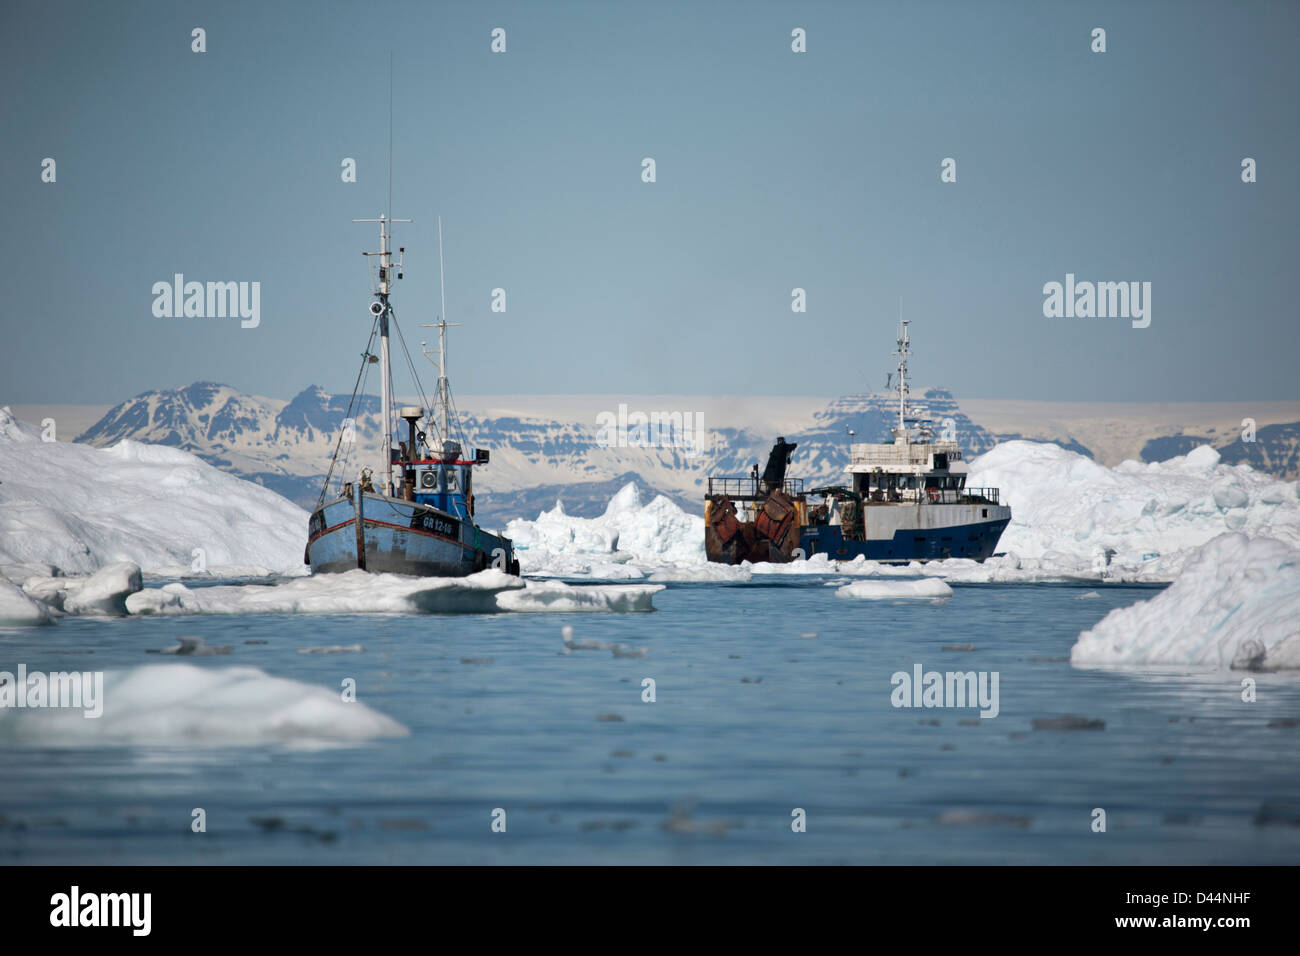 Fishing boats among icebergs in Greenland - Stock Image